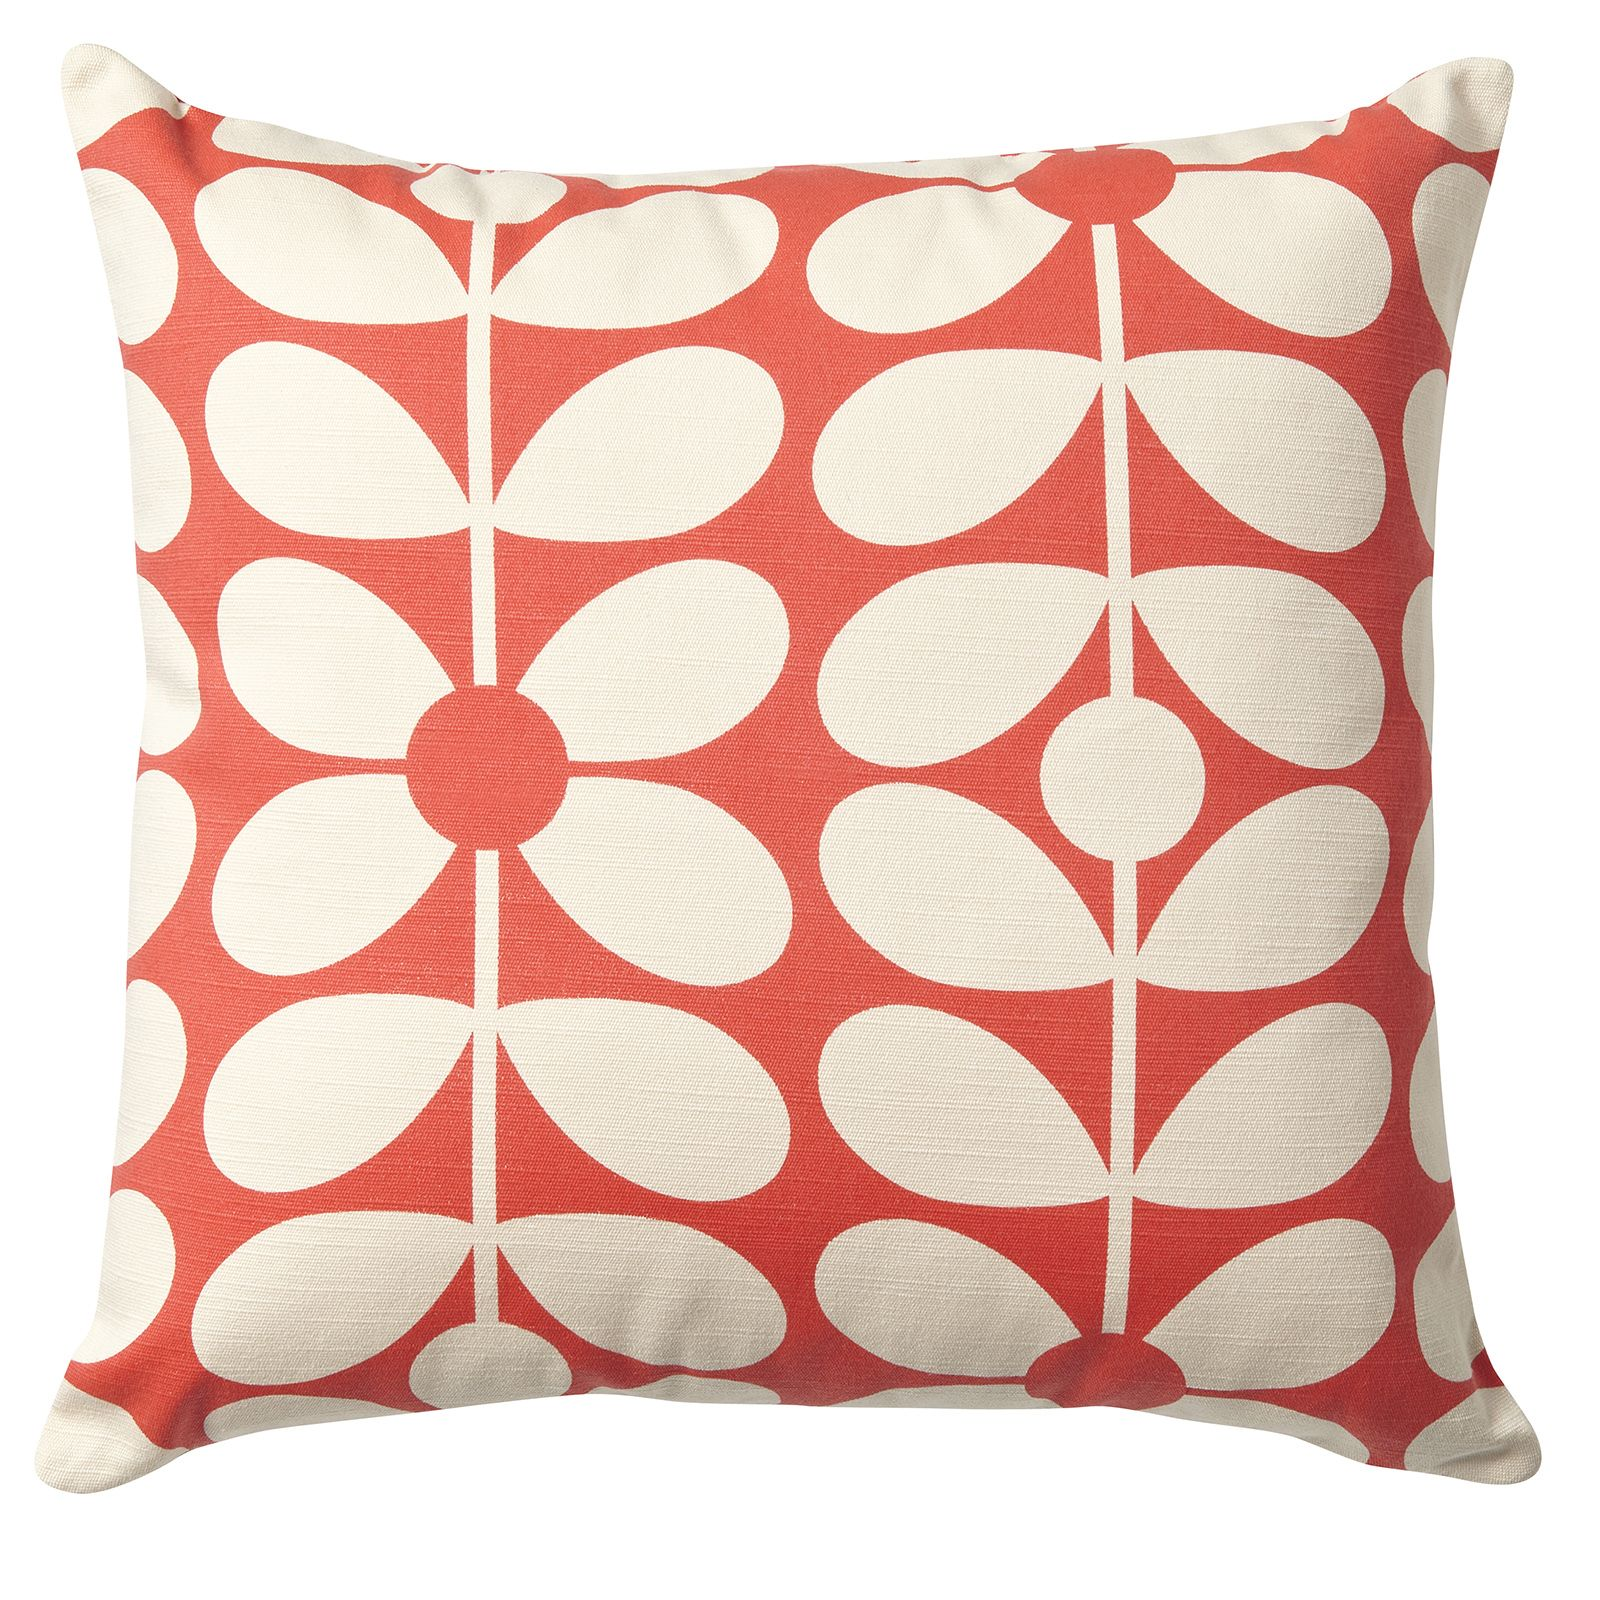 Orla Kiely Sixties Stem cushion with zip to close. Adds a